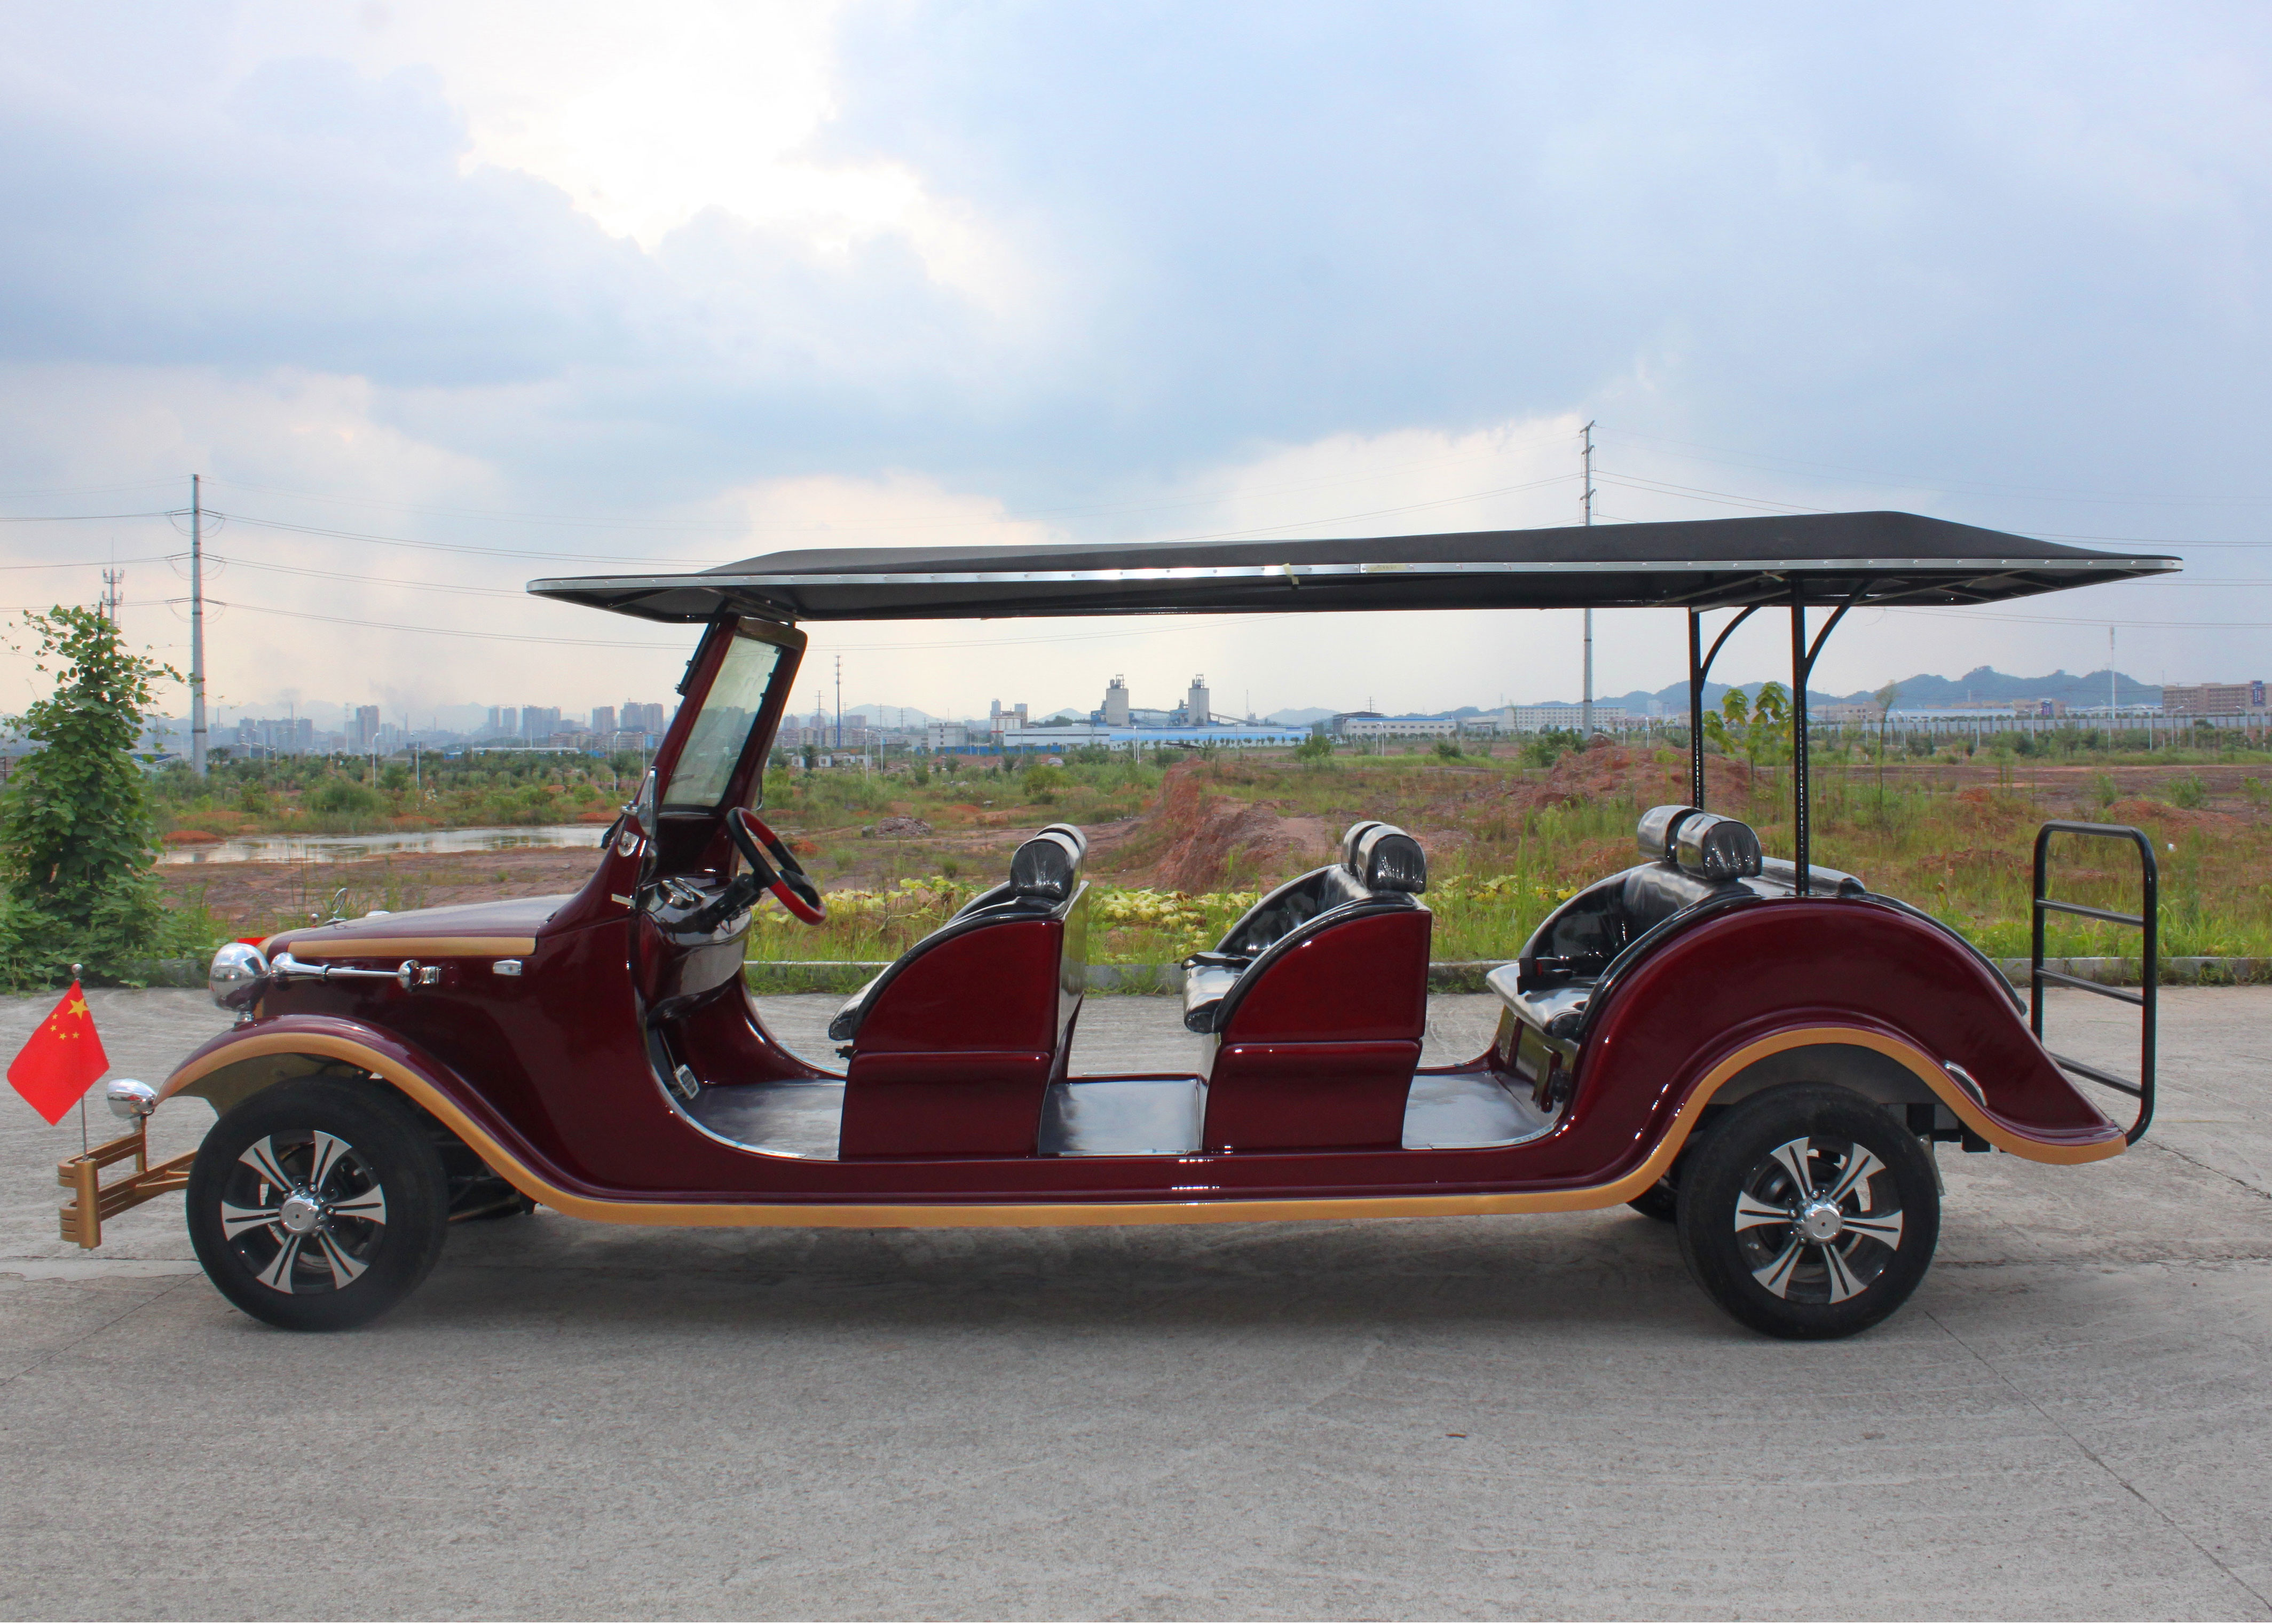 Hotel Shuttle Clic Golf Cars Street Legal Electric Vehicles 48v Battery Voltage